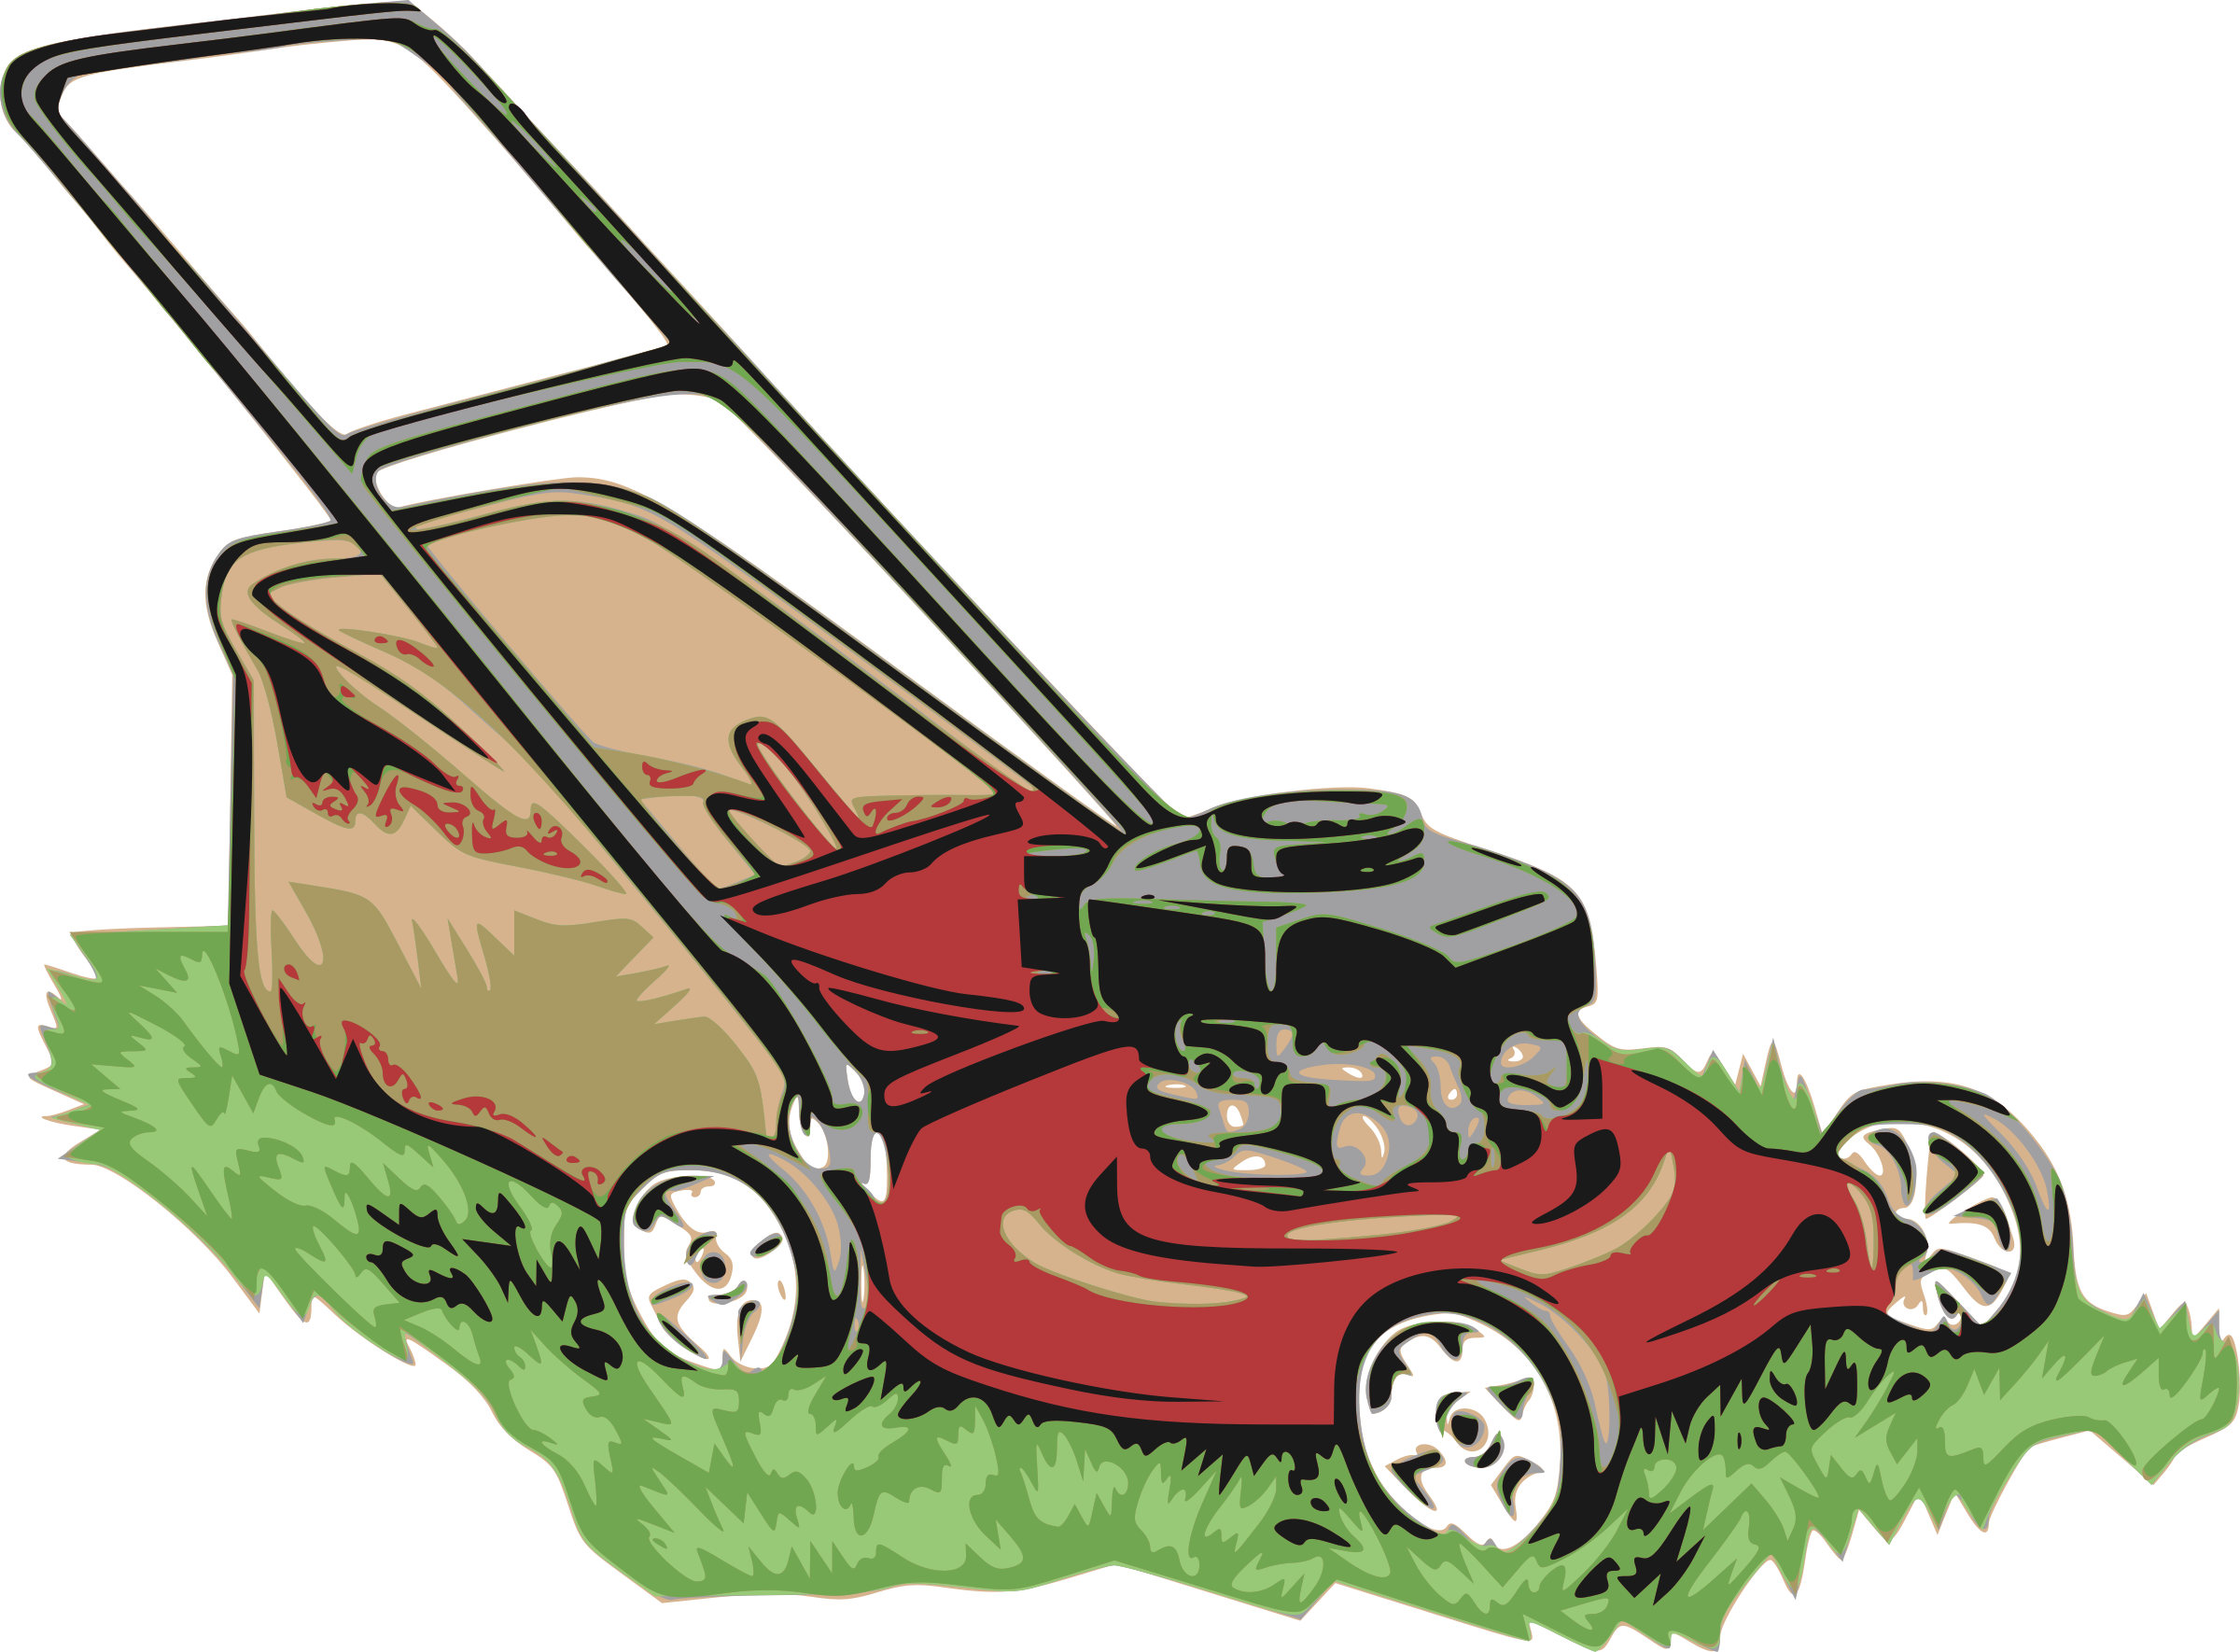 Red Lawnmower by j4p4n